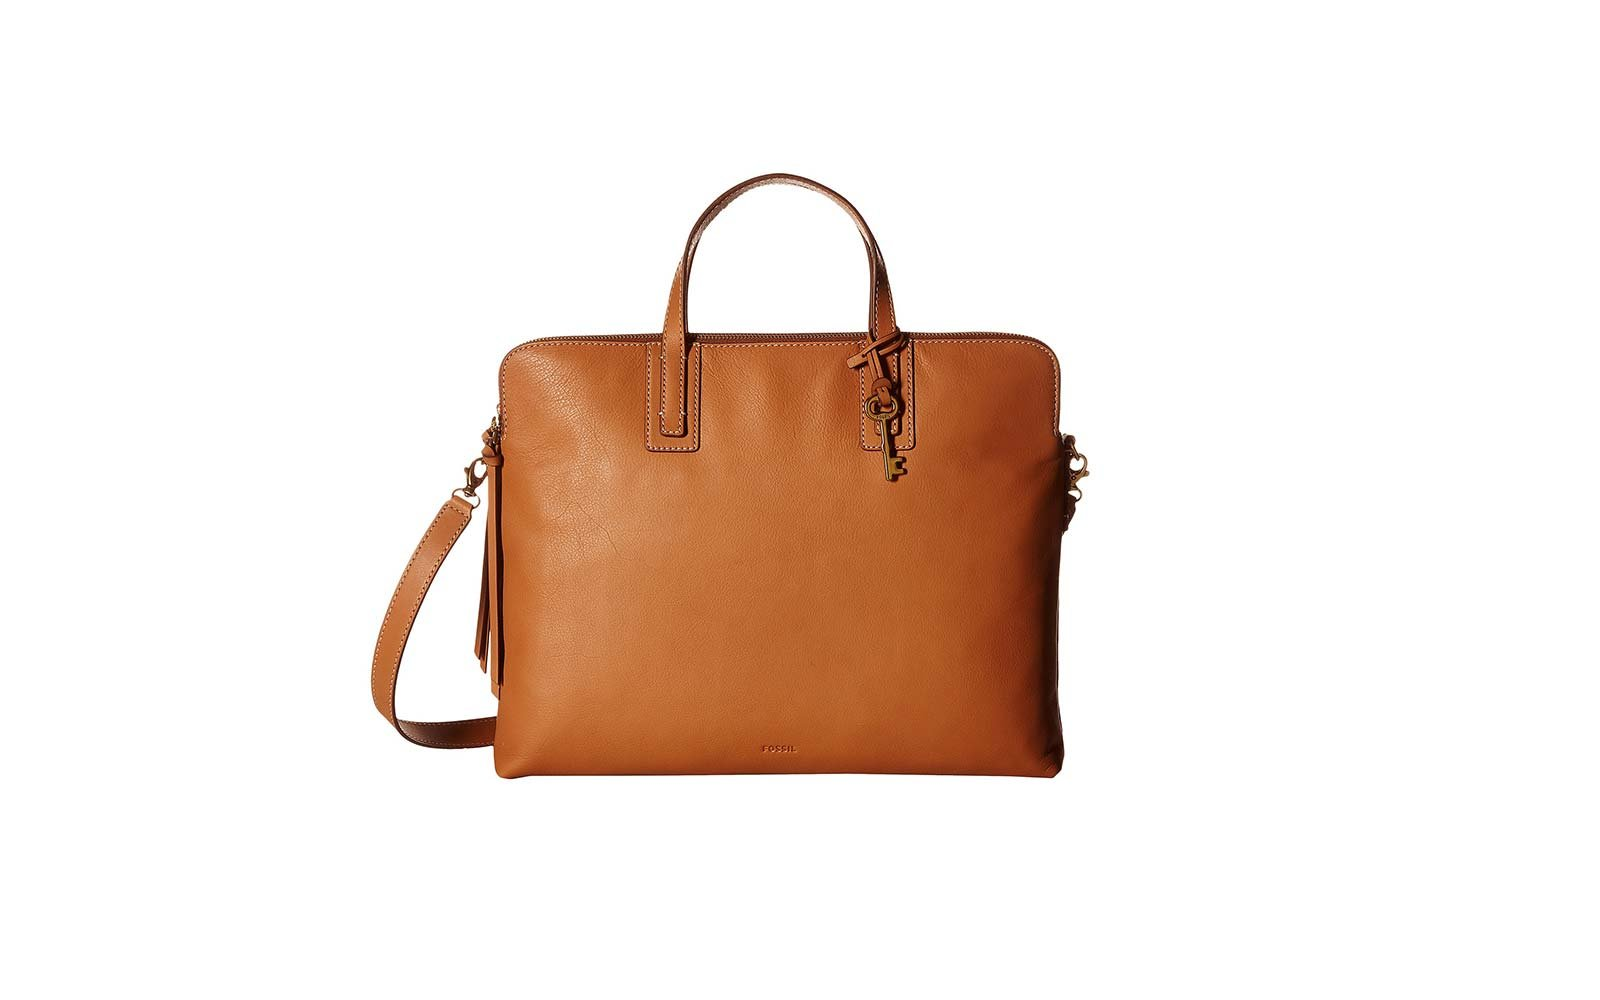 Stylish Laptop Bags For Business Travel | Travel + Leisure